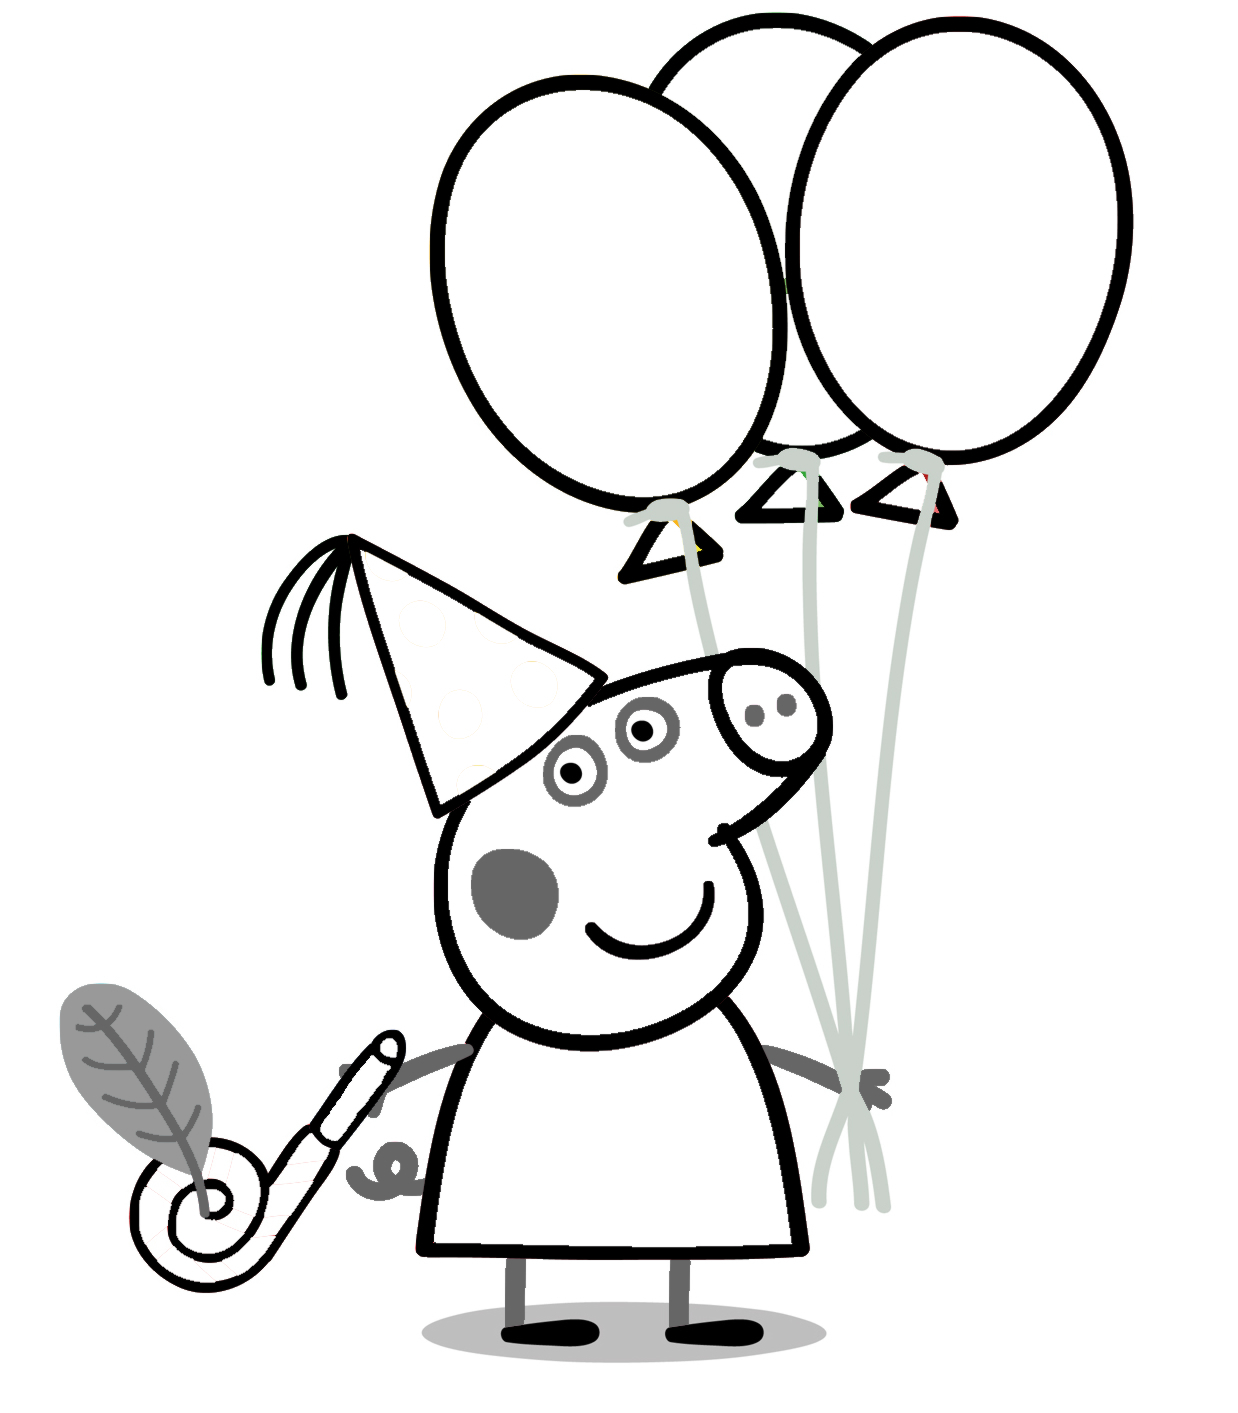 1238x1413 Peppa Pig Drawing Templates Peppa Pig Coloring Pages